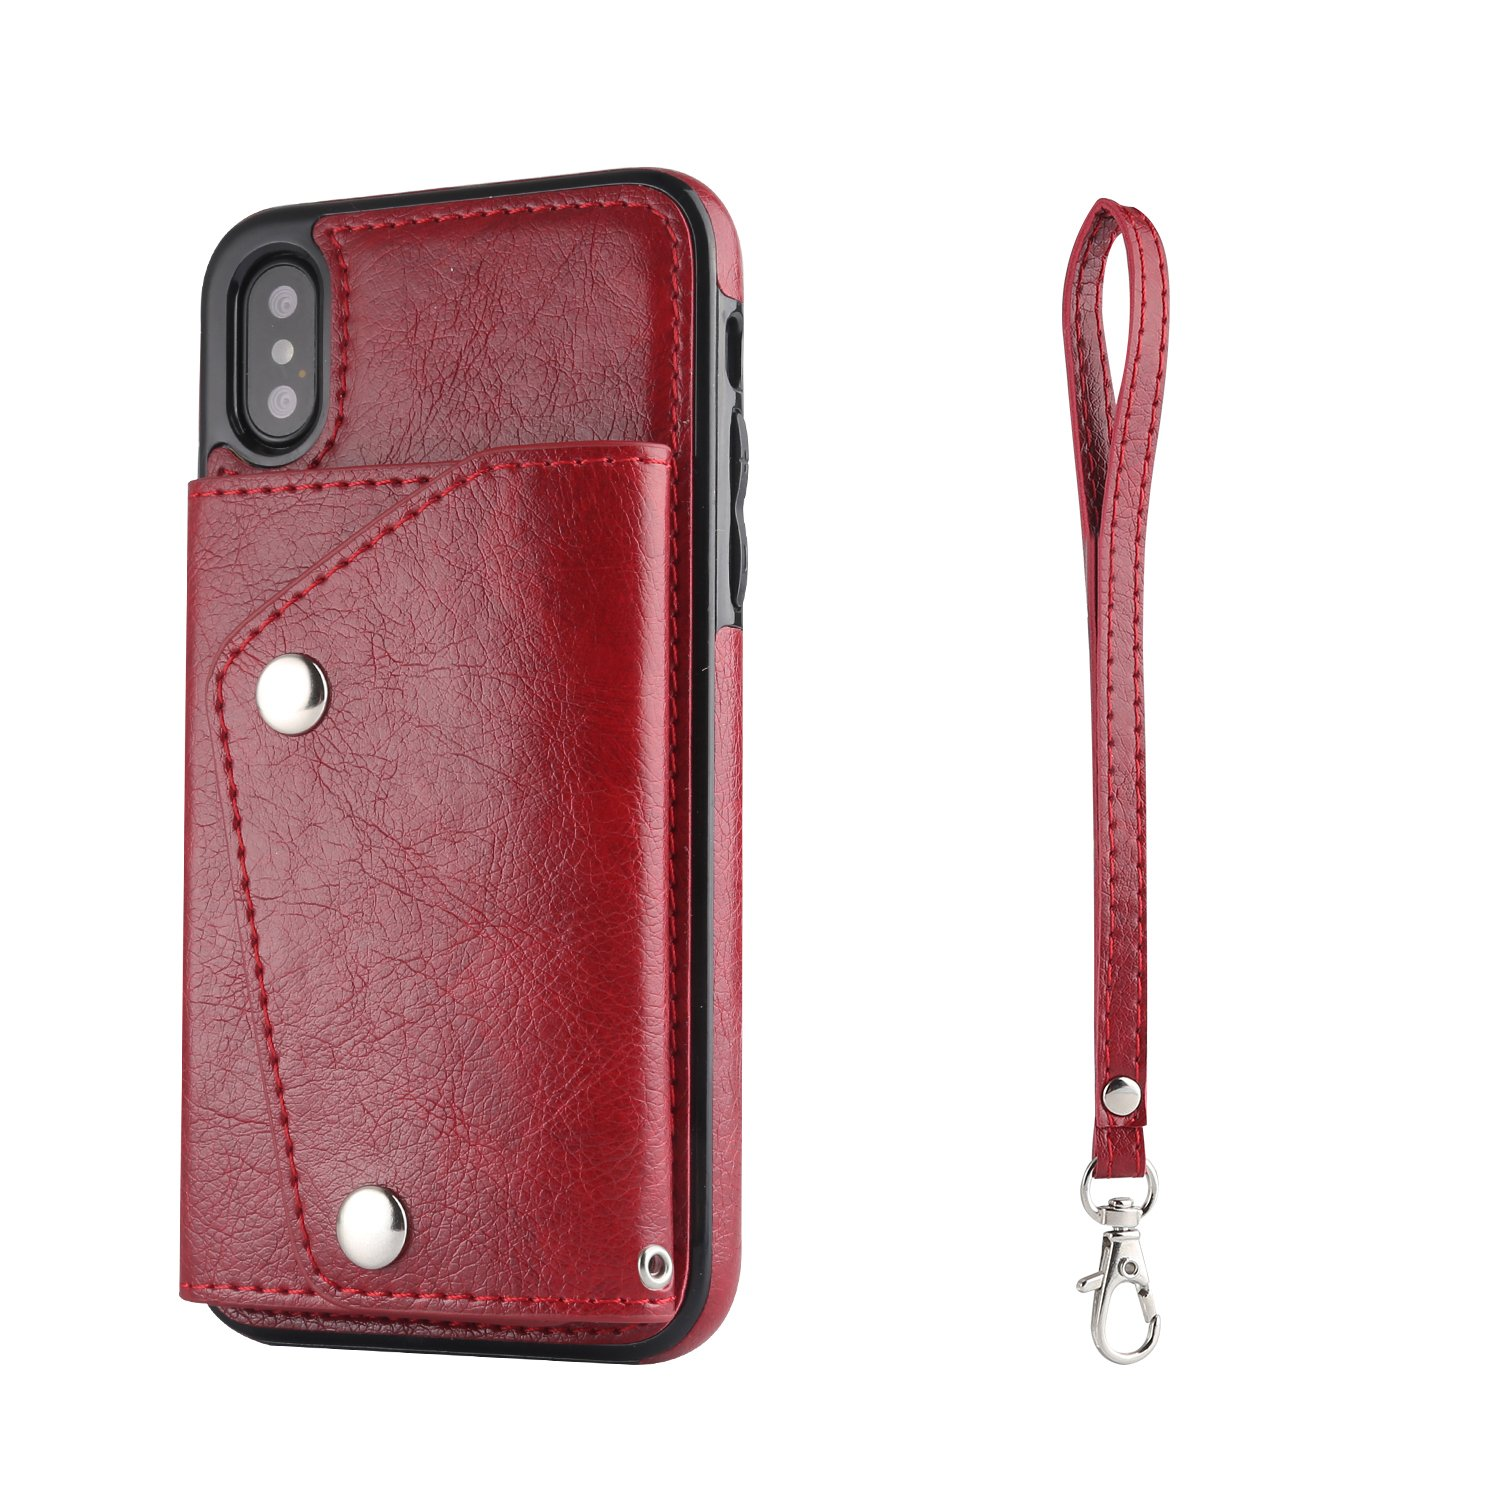 Gostyle iPhone XR Flip Wallet Case, iPhone XR Case with Credit Card Slots, Fashion Multifunction Premium PU Leather Cover with Kickstand Cash Pocket Hand Strap Shockproof Cover, Brown